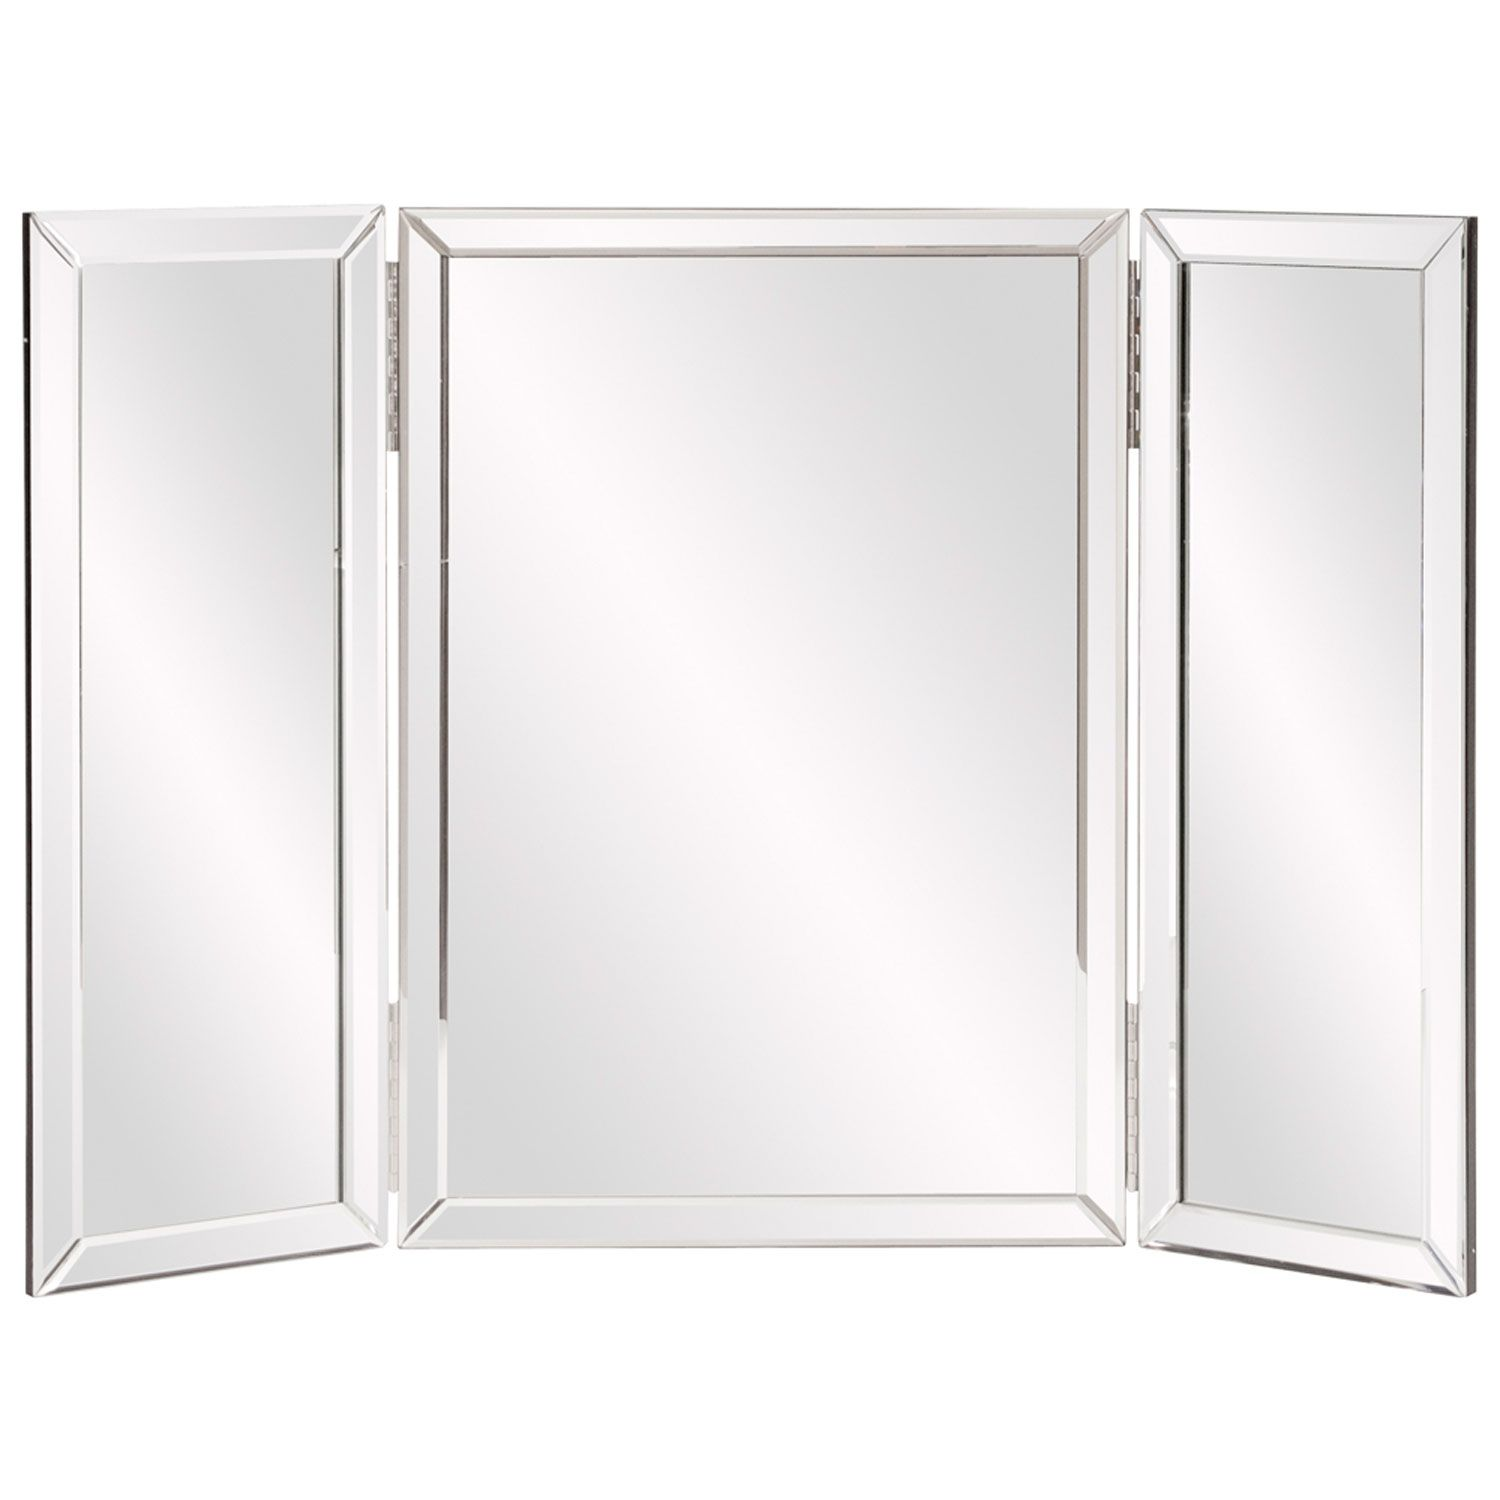 Tripoli Trifold Glass Tabletop Vanity Mirror Howard Elliott Collection Vanity  Mirrors Mirr